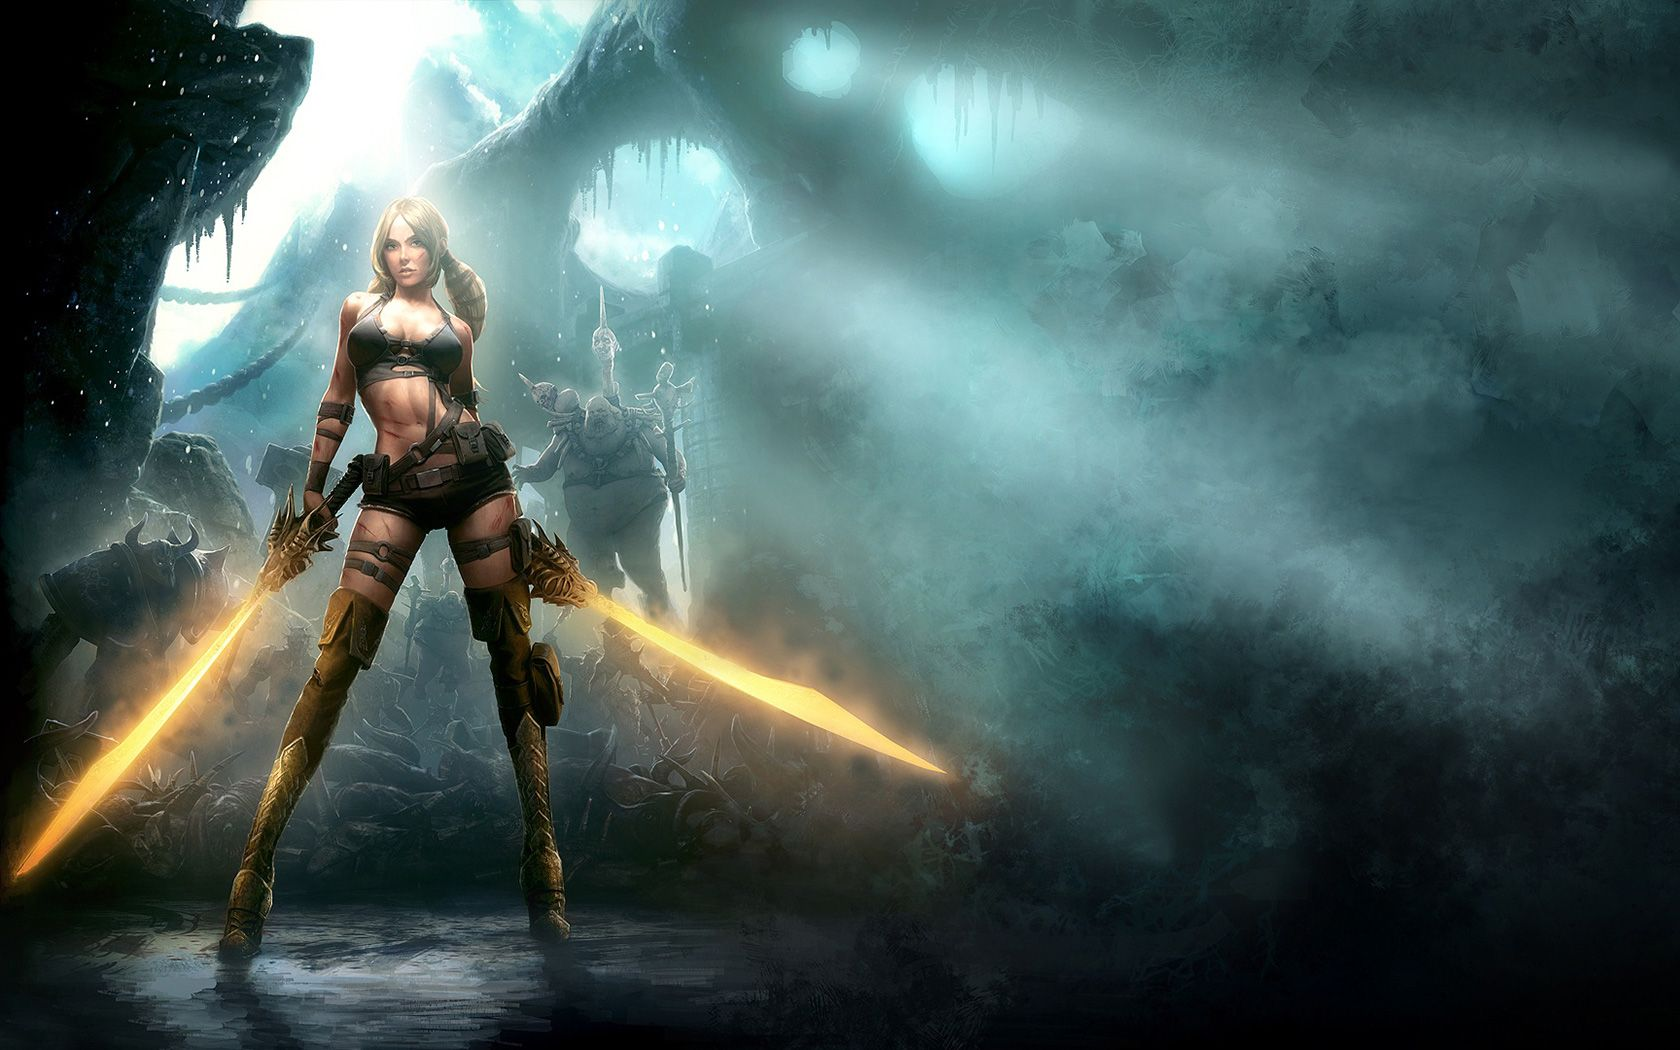 Stunning Hd Fantasy Gaming Desktop Wallpapers: Video Game Wallpapers High Resolution